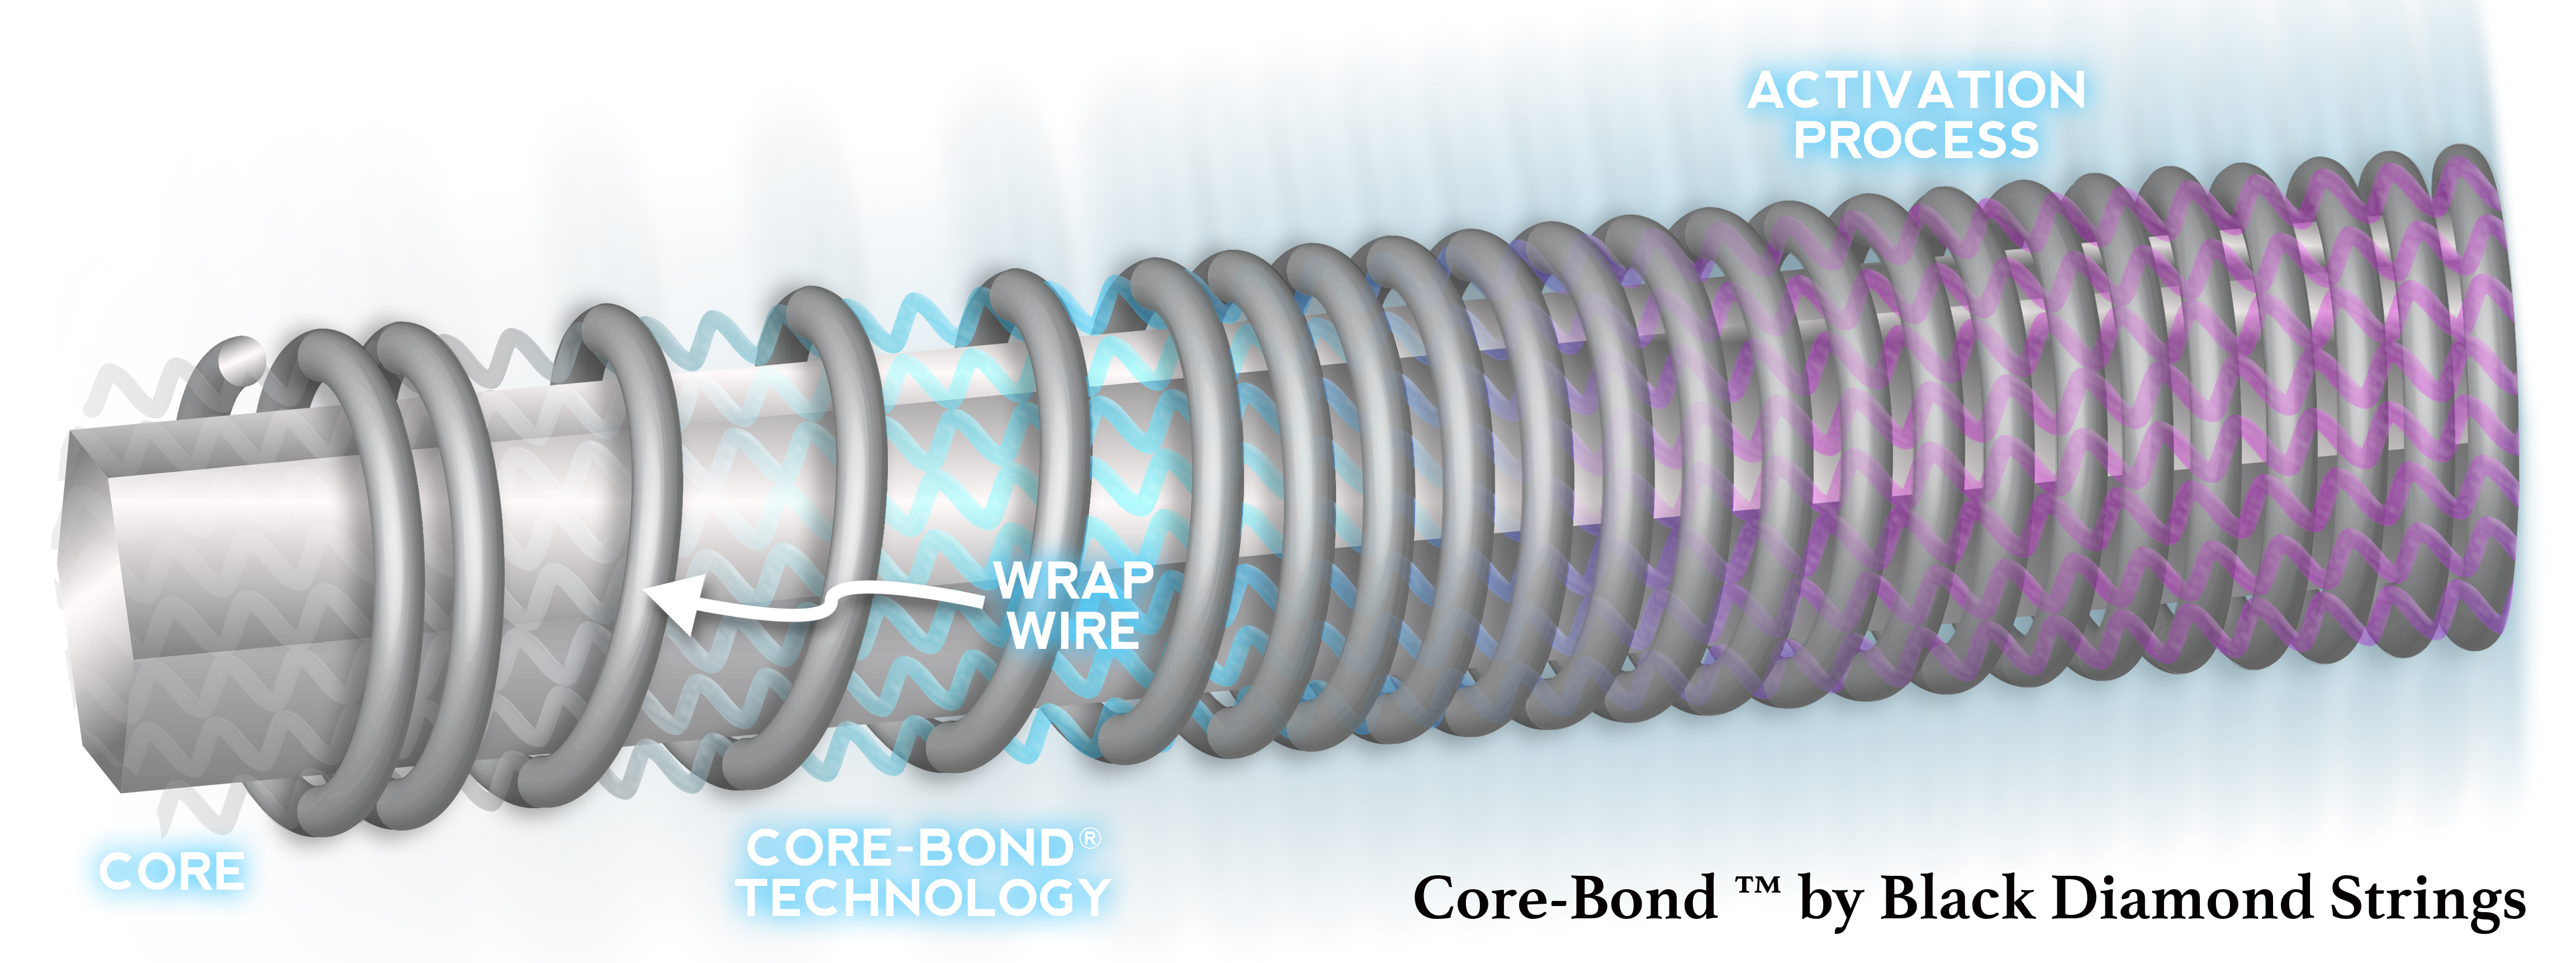 core-bond-illustration2.jpg